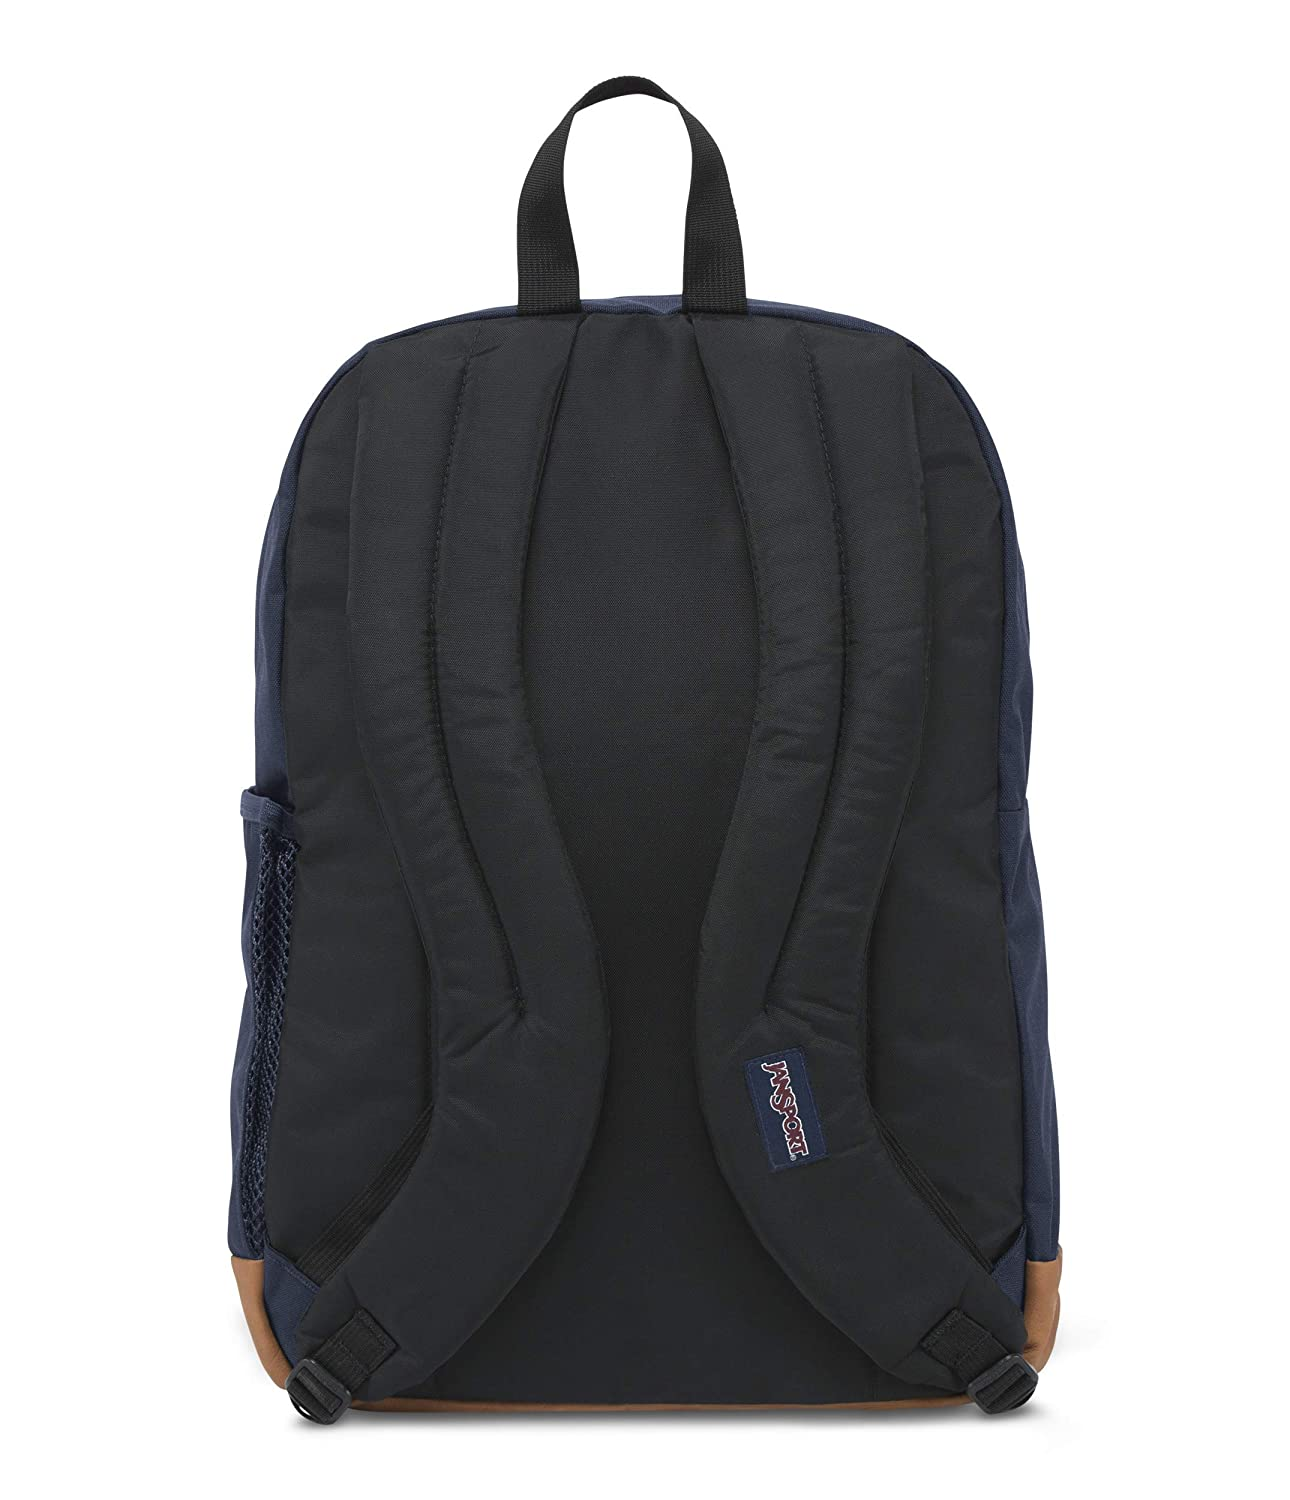 Amazon.com  JanSport Cool Student Laptop Backpack - Navy  Toys   Games 566e200462fc1